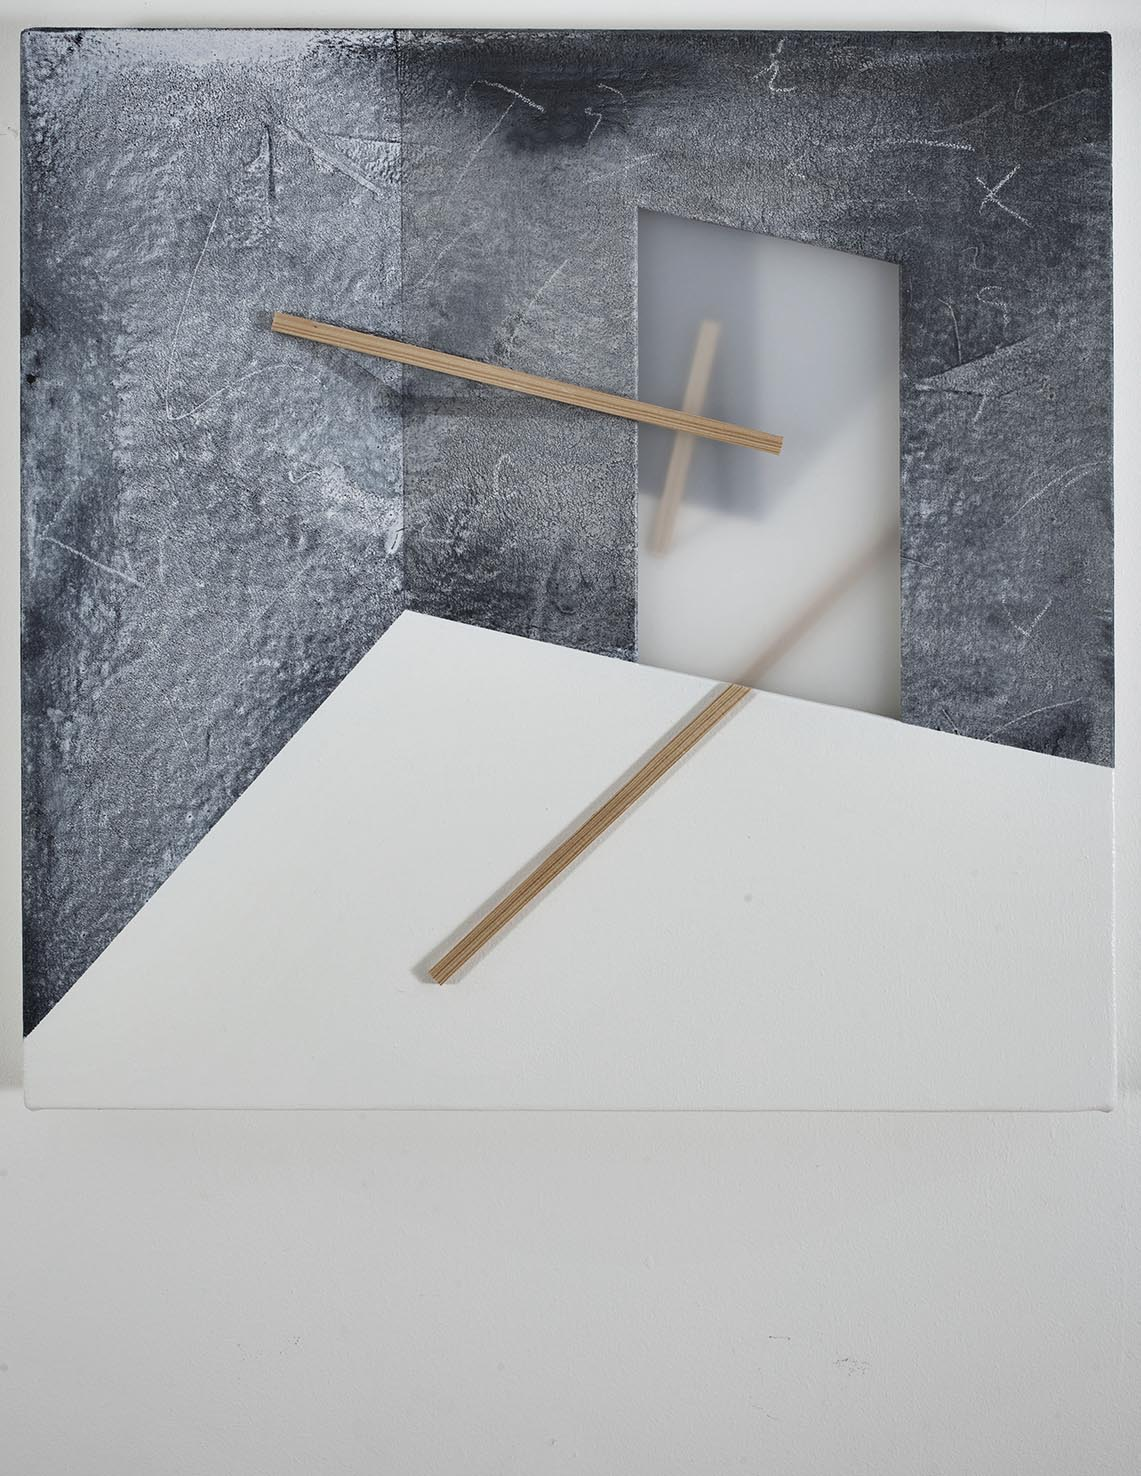 Metaphysical choreography / 2016 / Acrylic paint,  wooden strip and plexiglass  on canvas / 50x50 cm   - STAGE  - Pere Galera